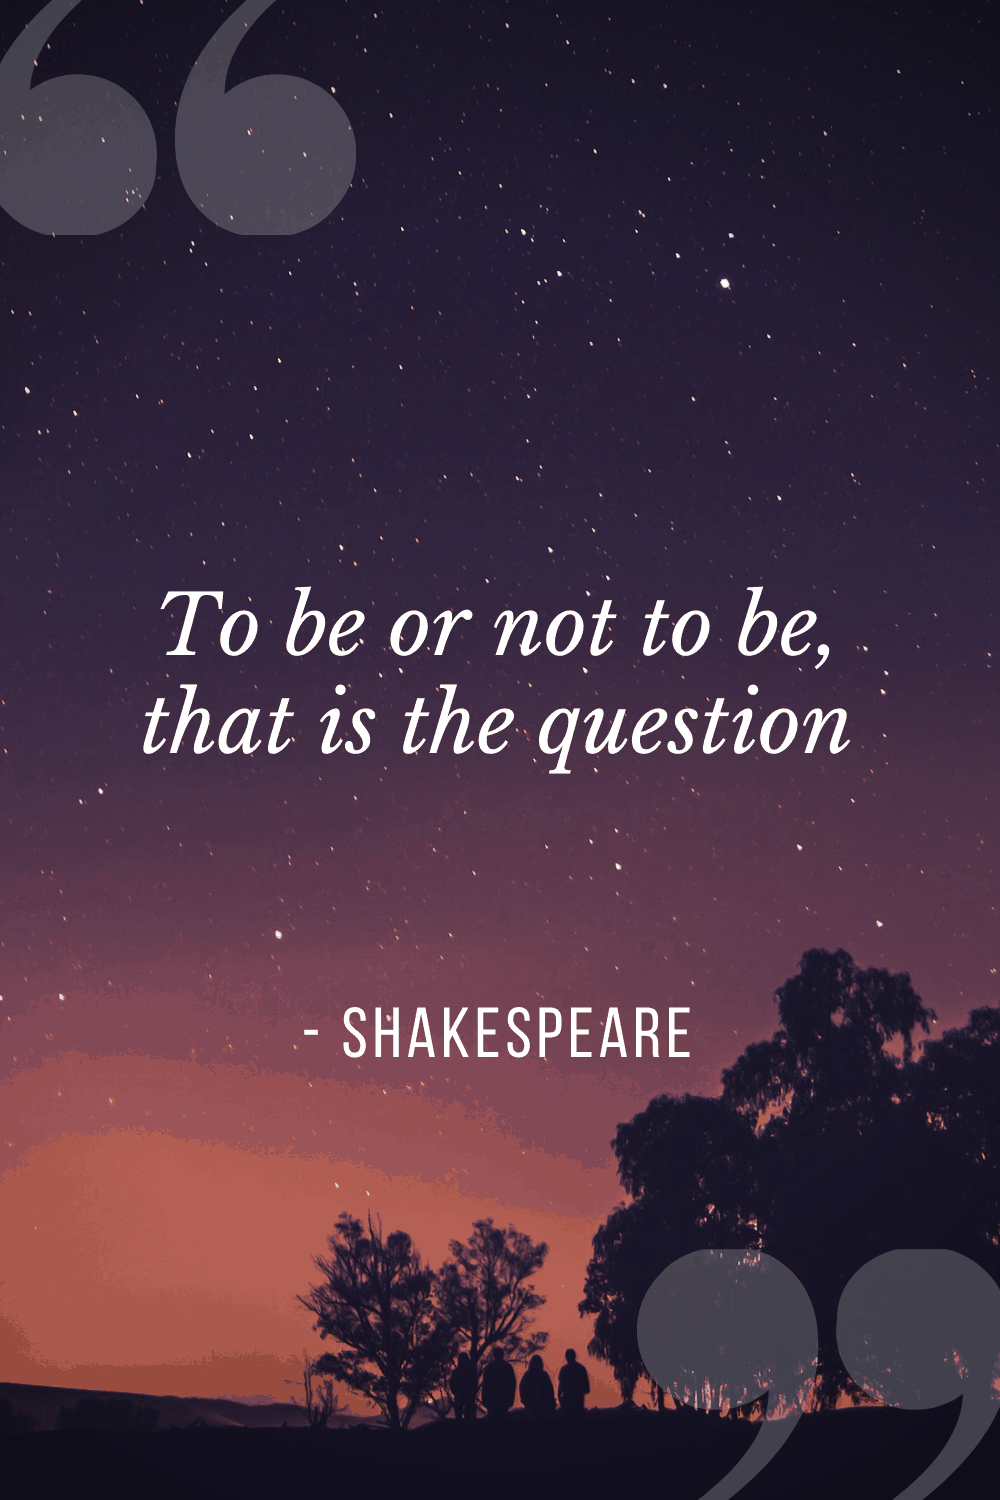 To be or not to be, that is the question, Shakespeare